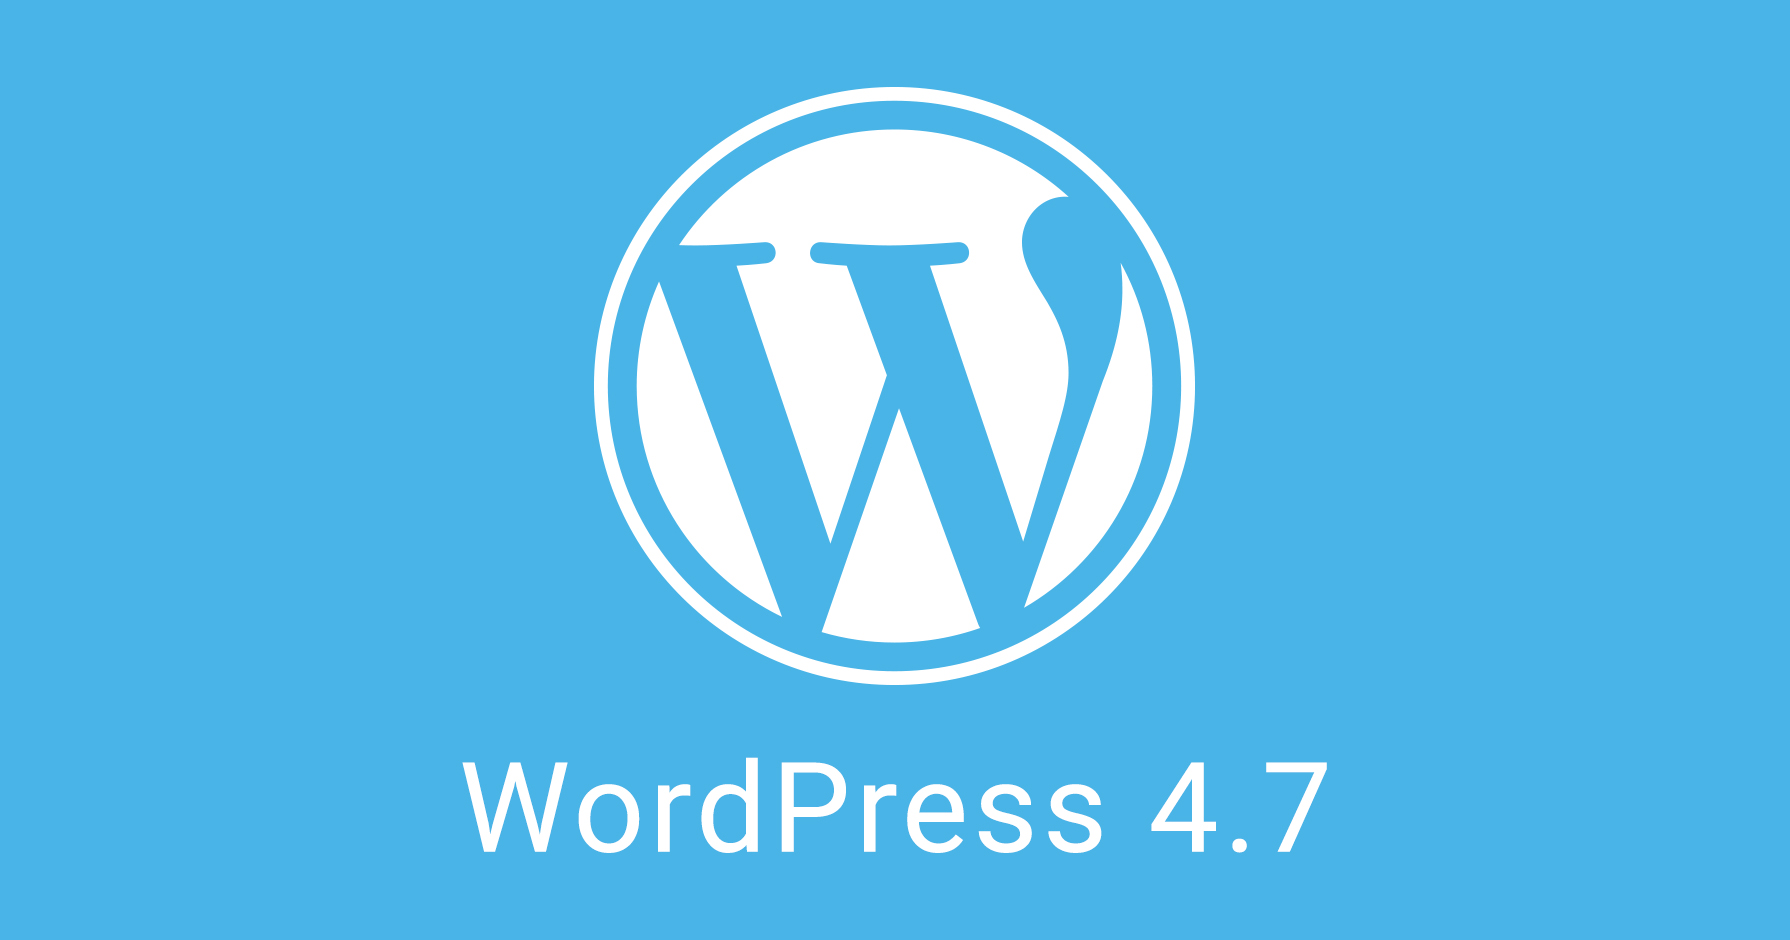 WordPress 4.7: Matt Mullenweg Passes the Torch to Helen Hou-Sandí